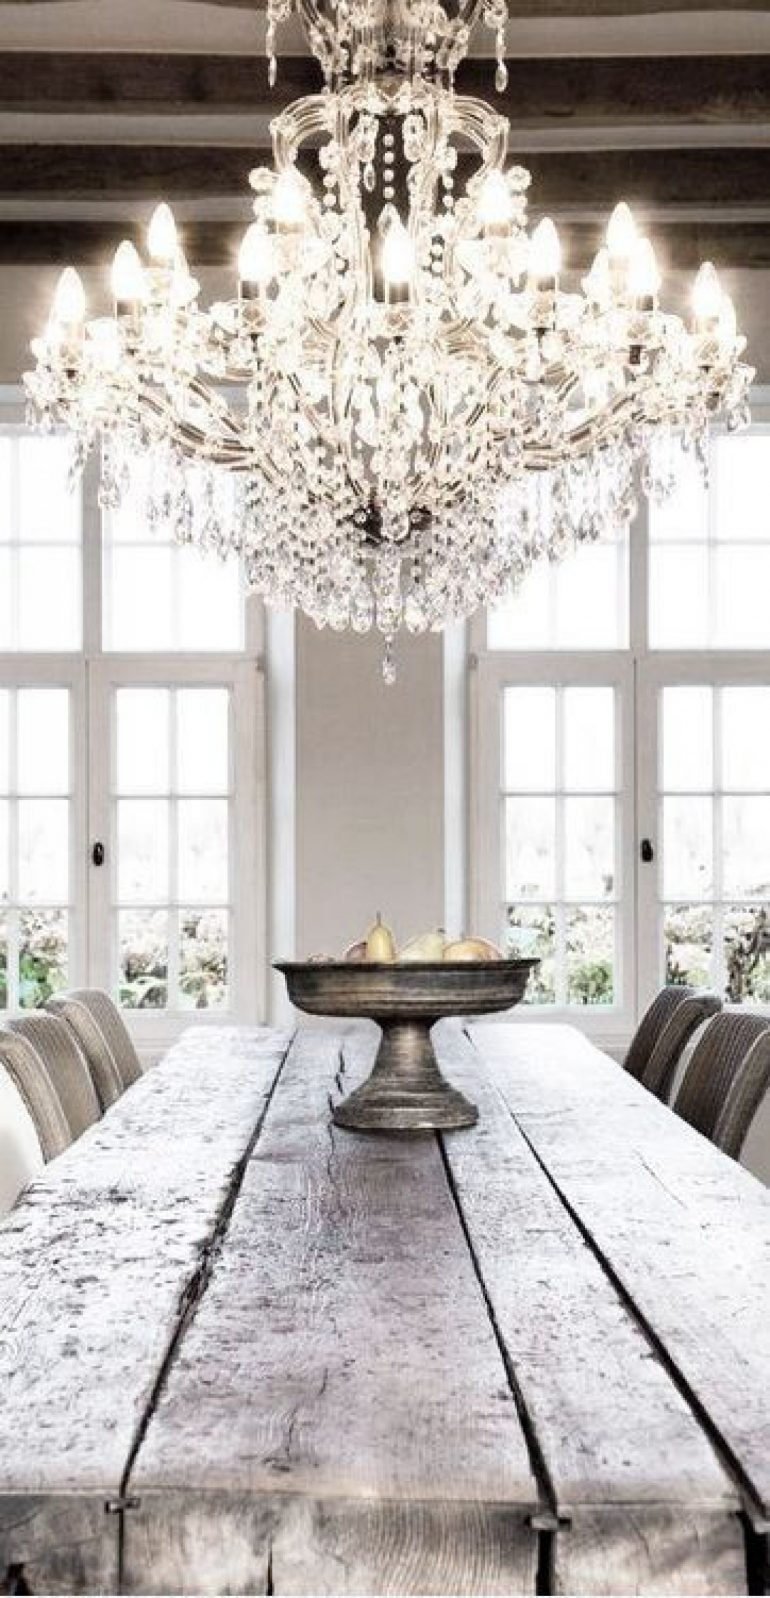 dining room chandeliers 7 Dining Room Chandeliers That Dreams Are Made Of 7 Dining Room Chandeliers That Dreams Are Made Of 5 e1501778588657